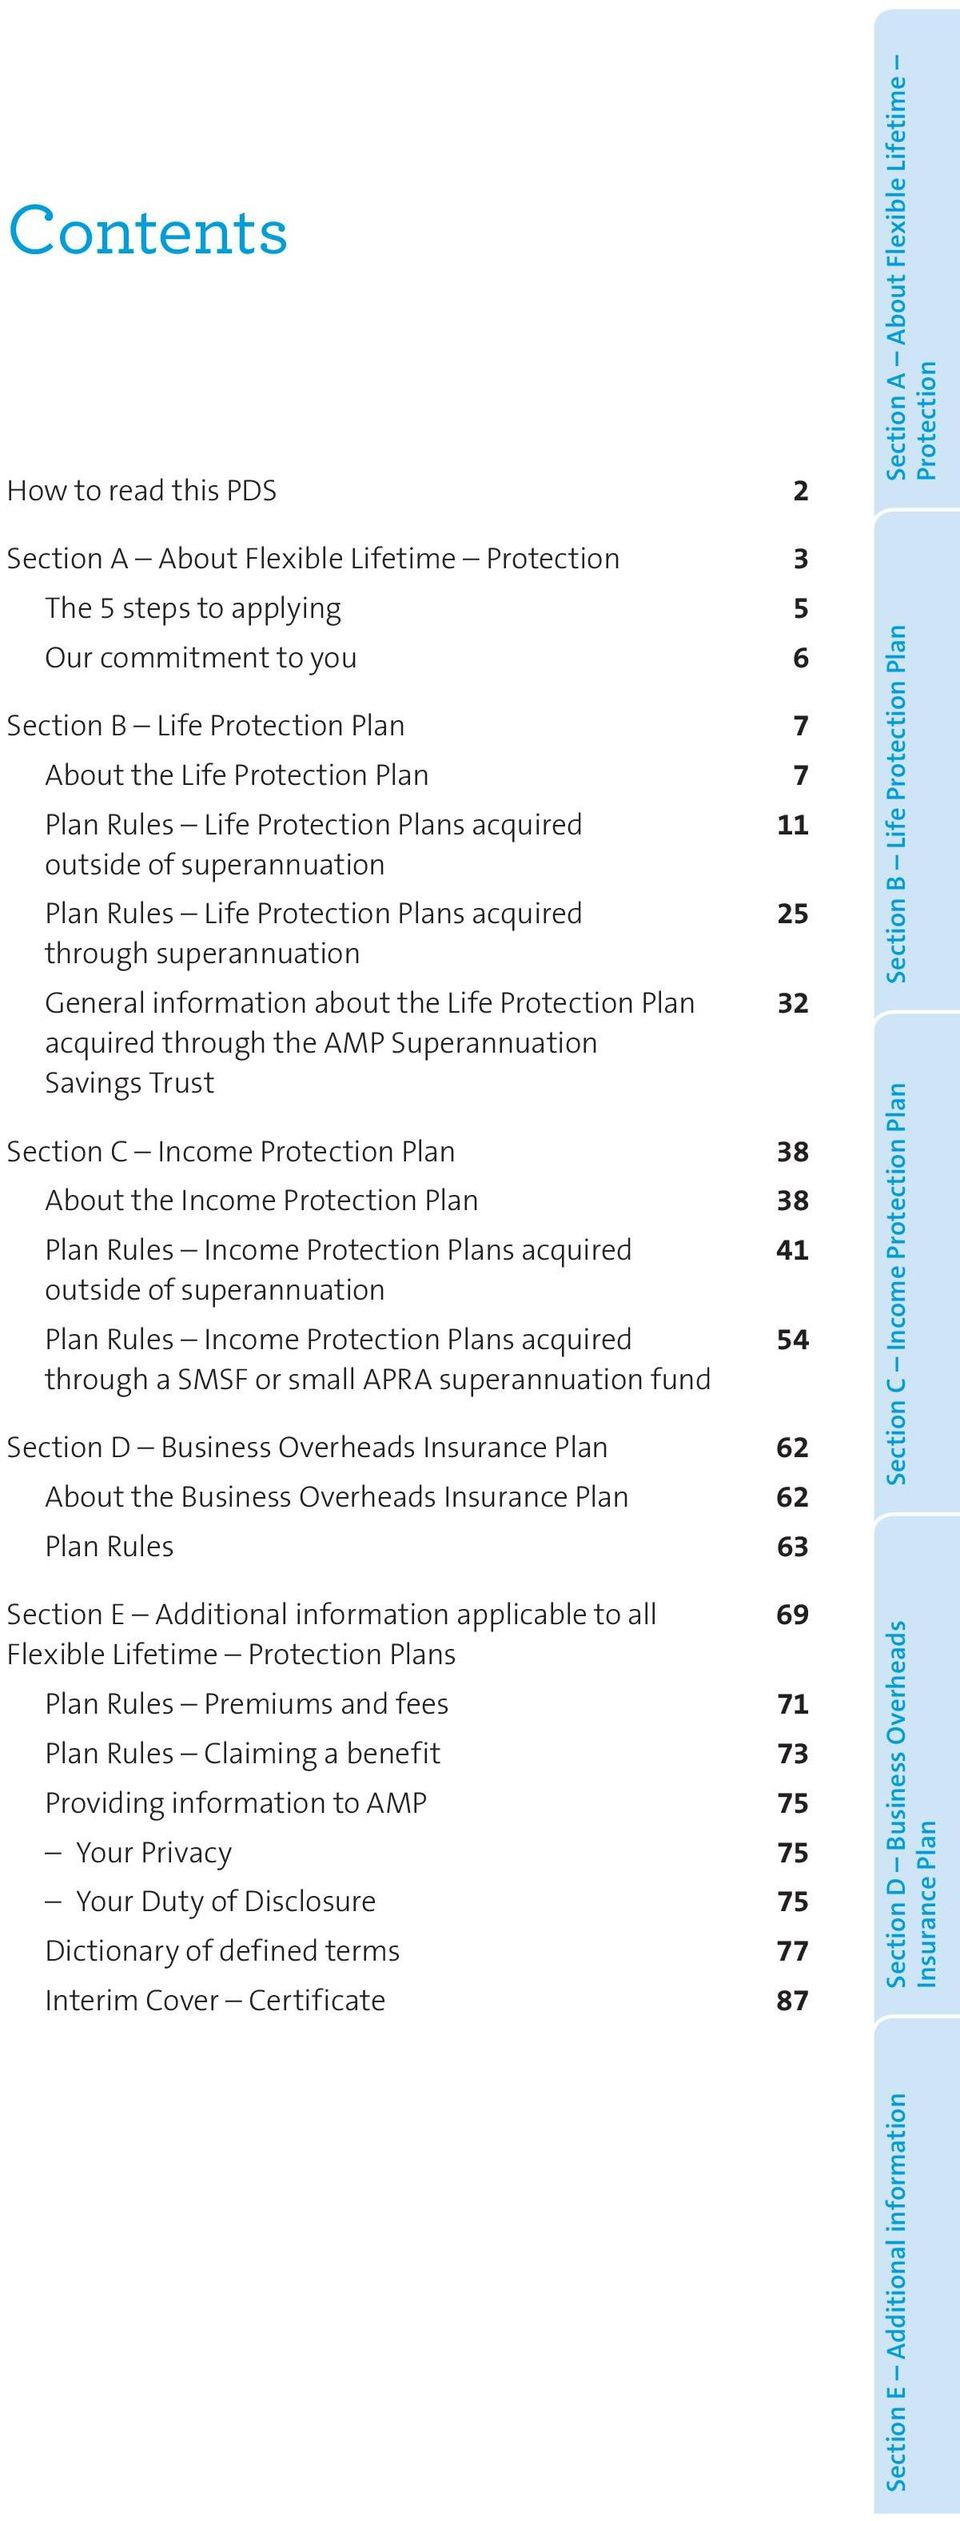 through the AMP Superannuation Savings Trust Section C Income Protection Plan 38 About the Income Protection Plan 38 Plan Rules Income Protection Plans acquired 41 outside of superannuation Plan